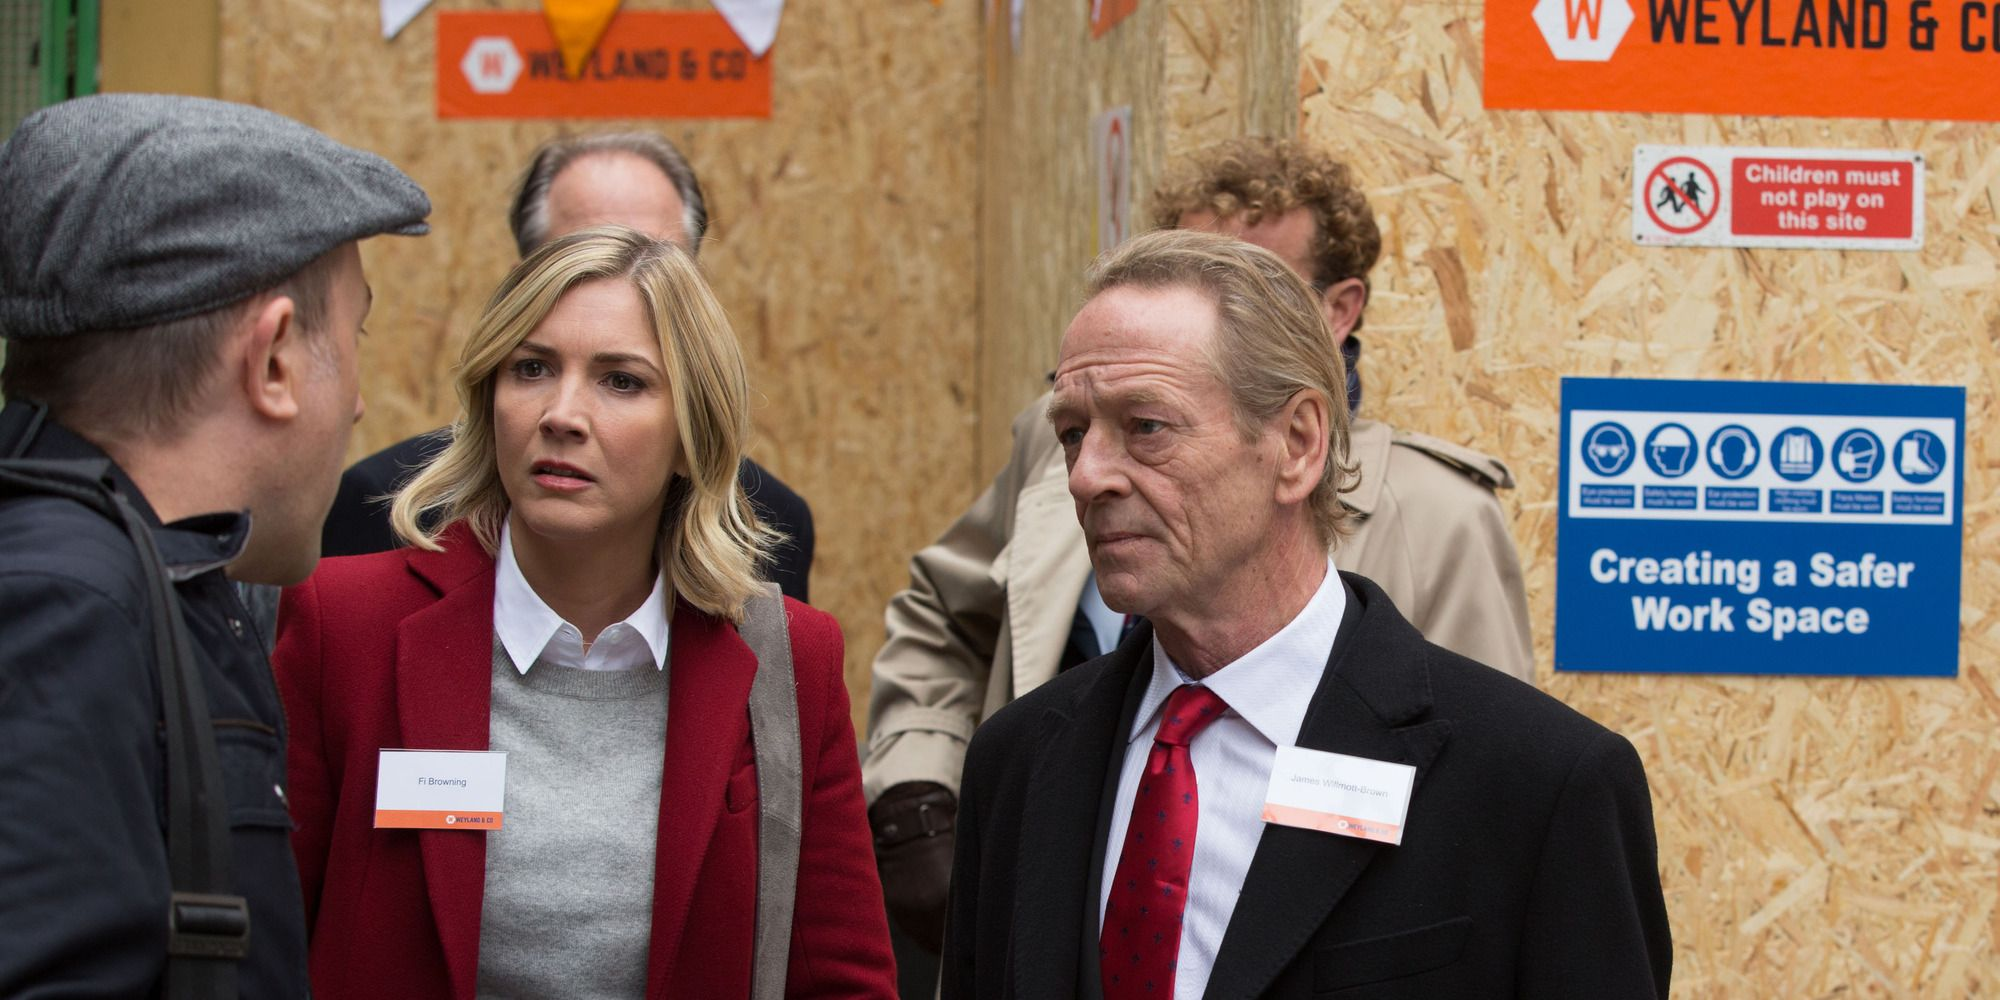 Fi Browning and James Willmott-Brown have a press launch in EastEnders